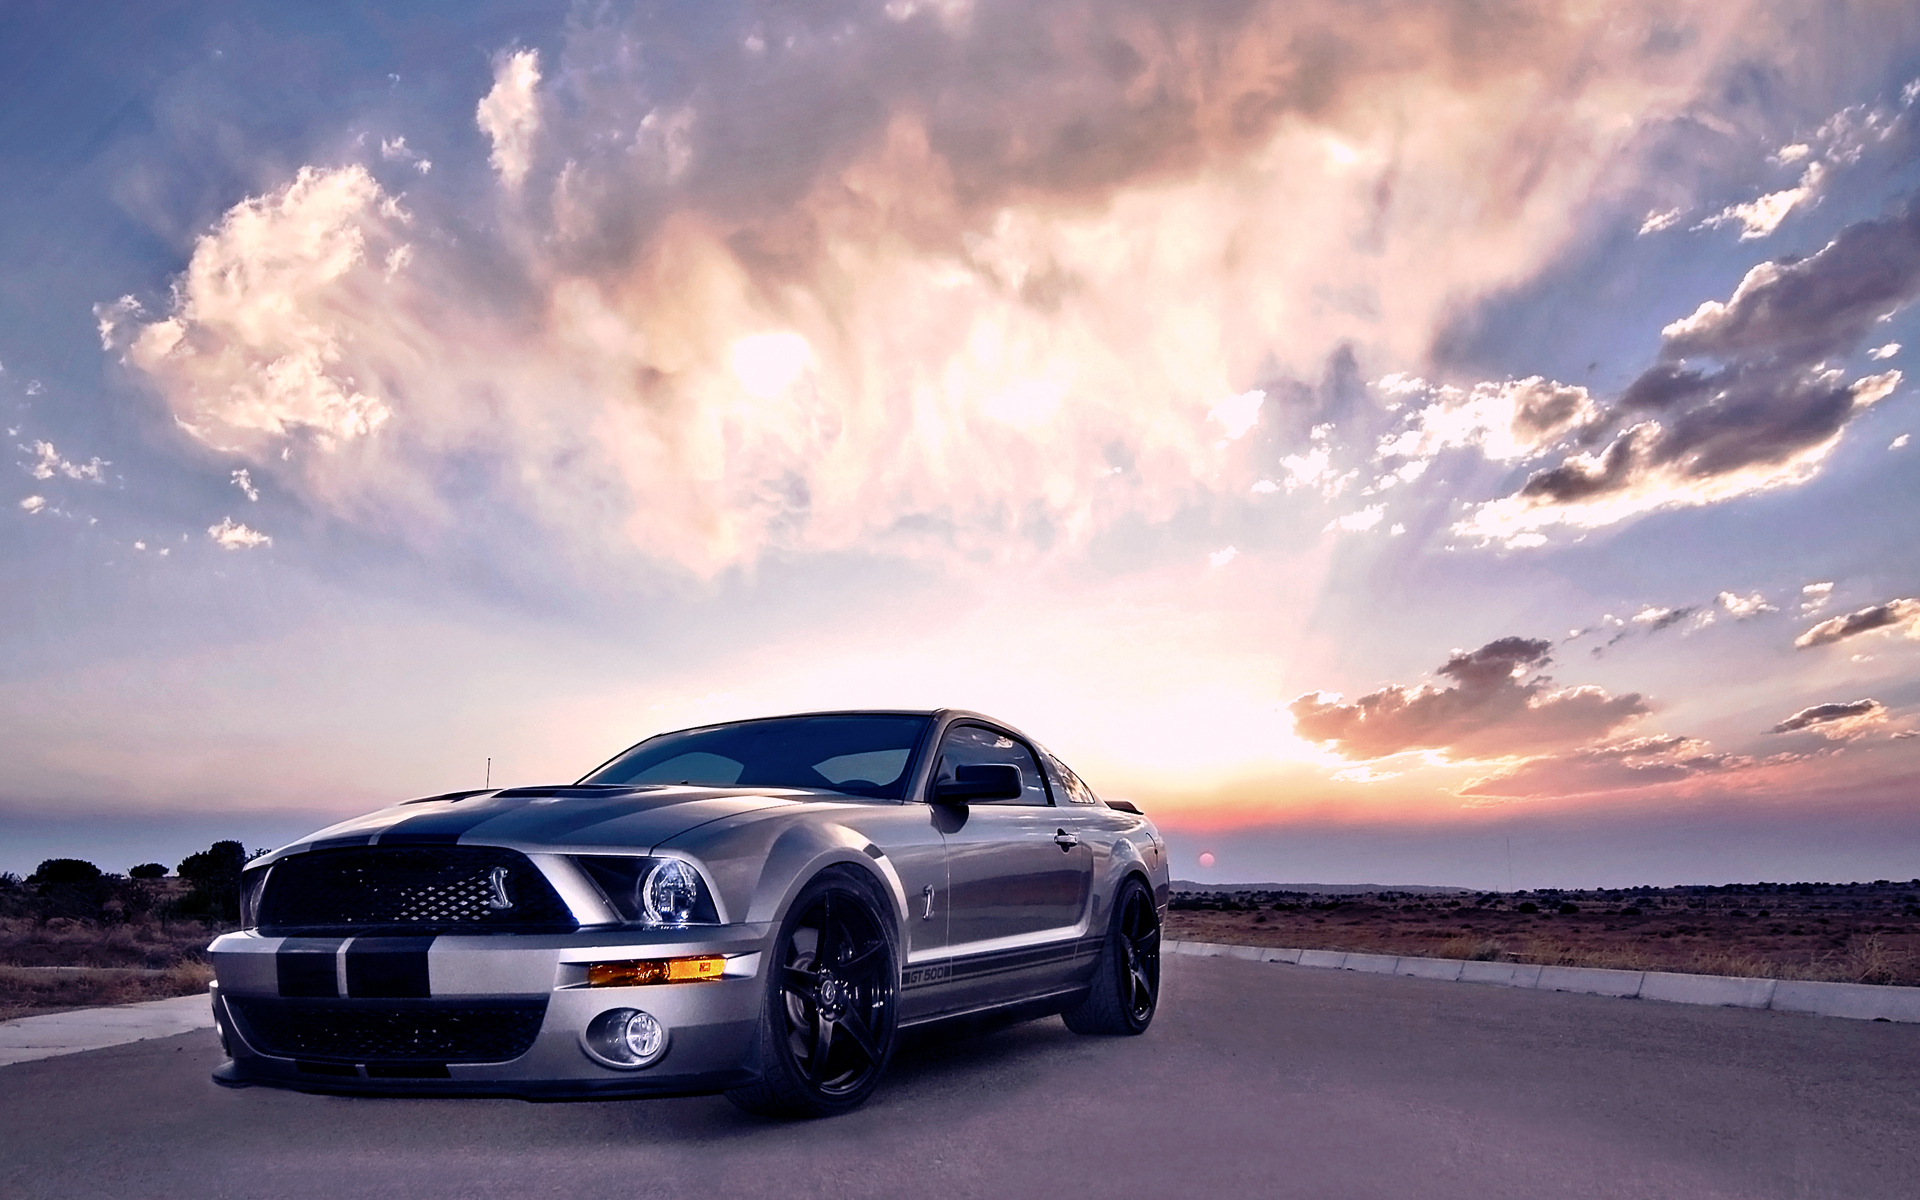 Cars Wallpapers Ford Mustang GT500 Shelby Cobra Cool Wallpaper HD 1920x1200